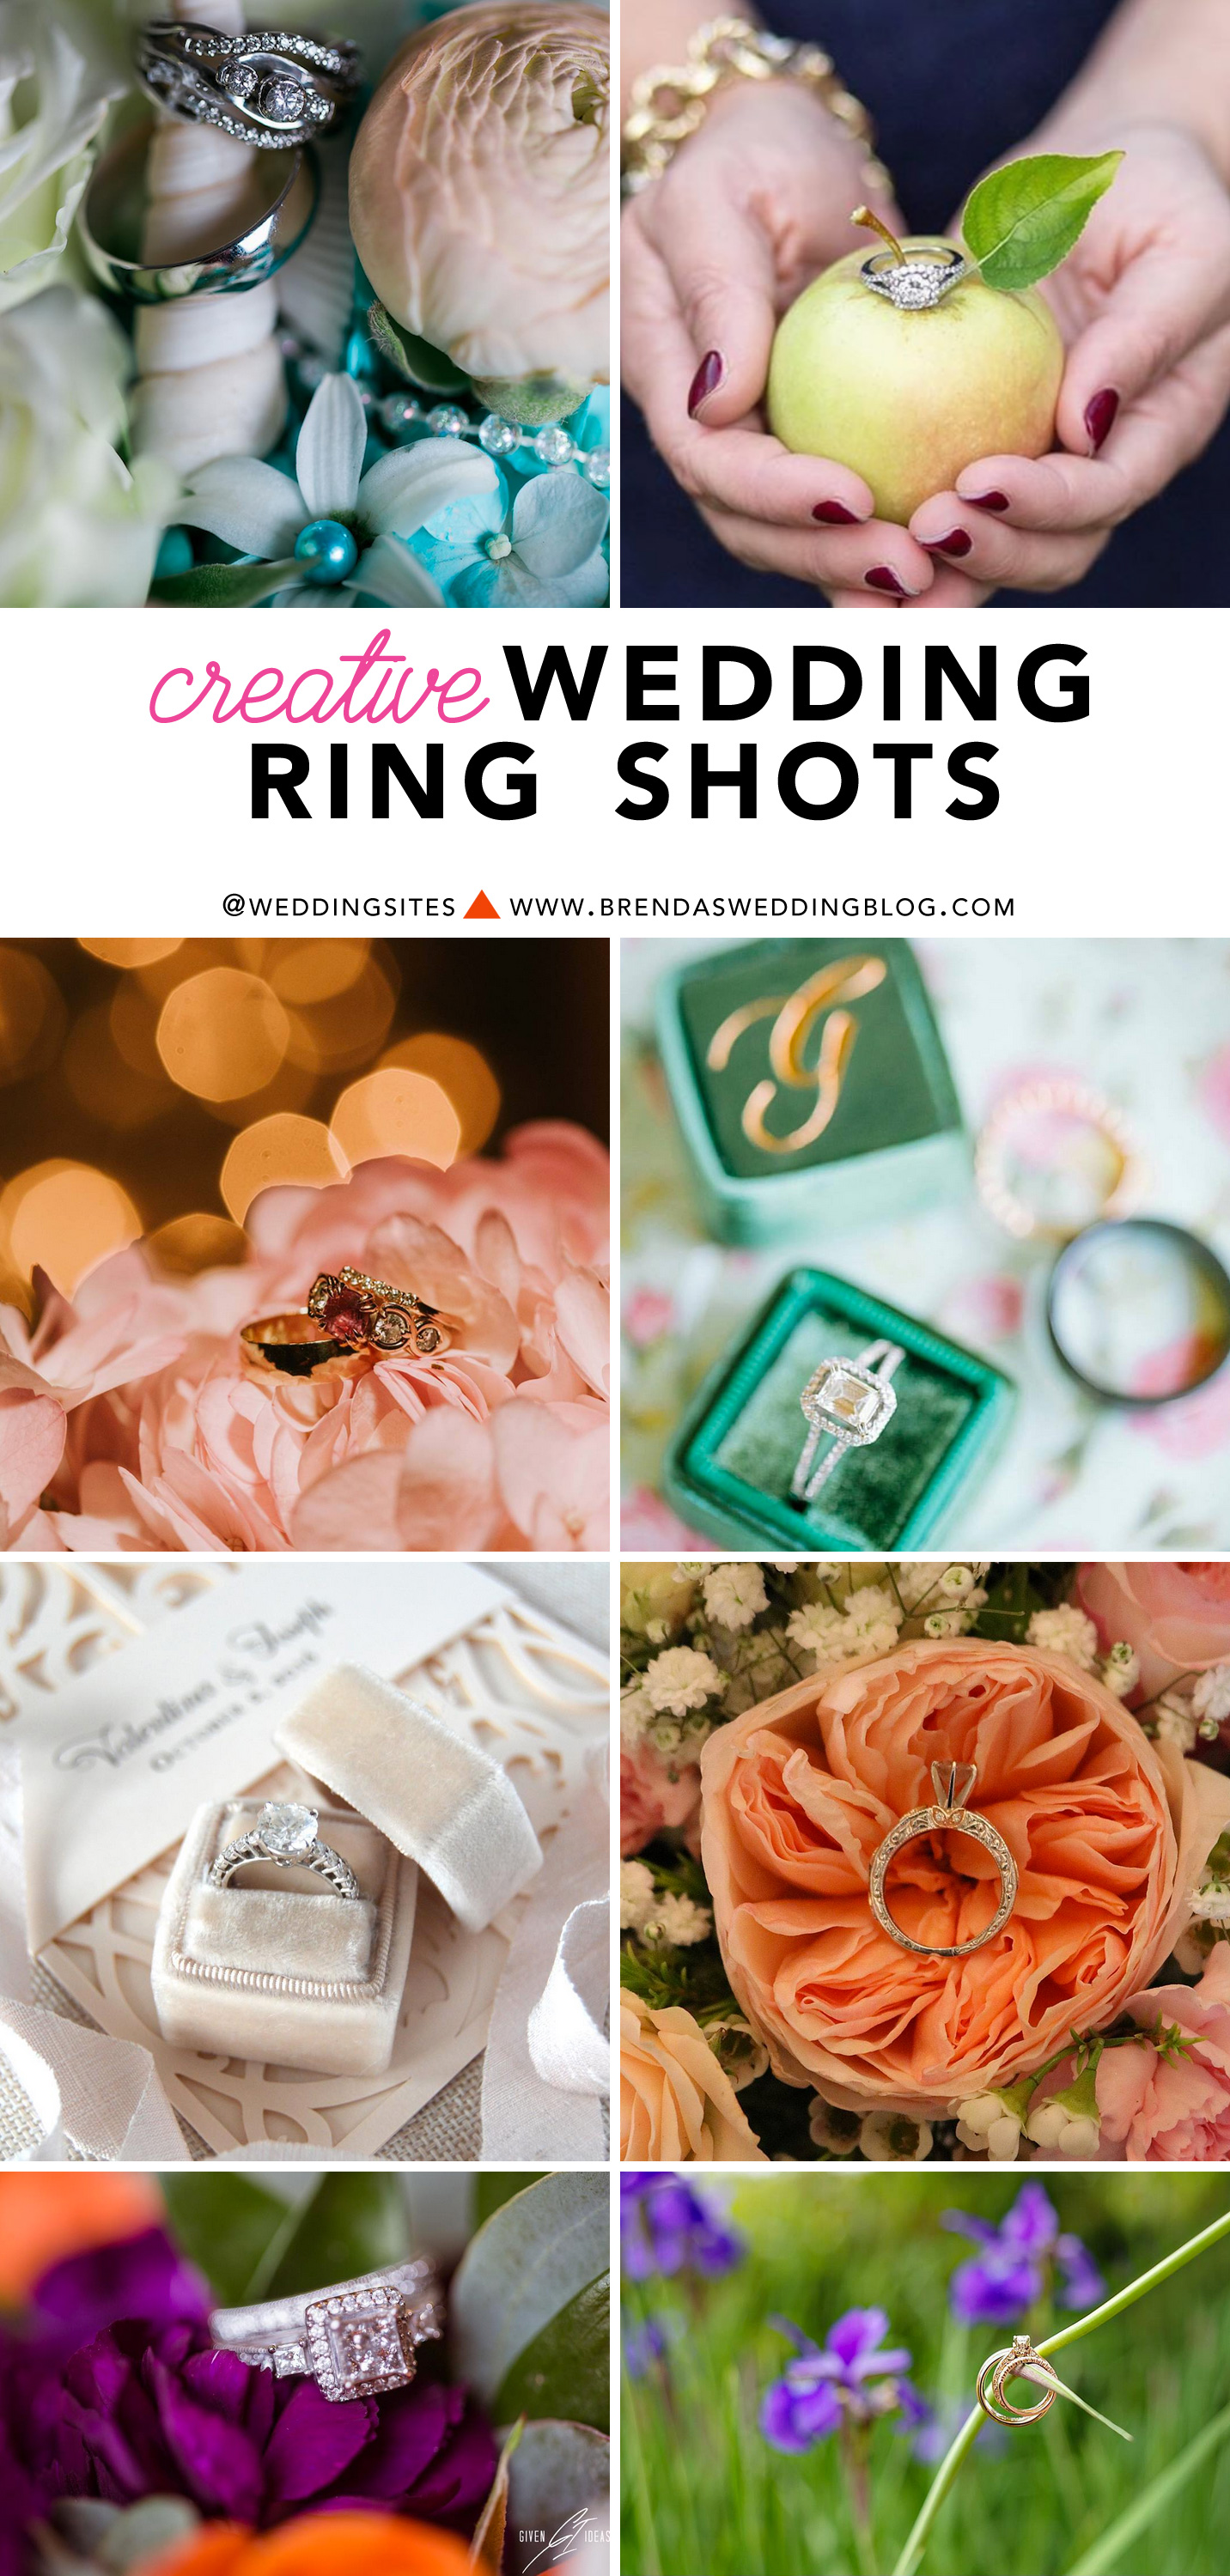 Creative Wedding Ring Shots : Click on over to www.BrendasWeddingBlog.com to see all the sparkly photo inspiration of wedding rings and engagement rings